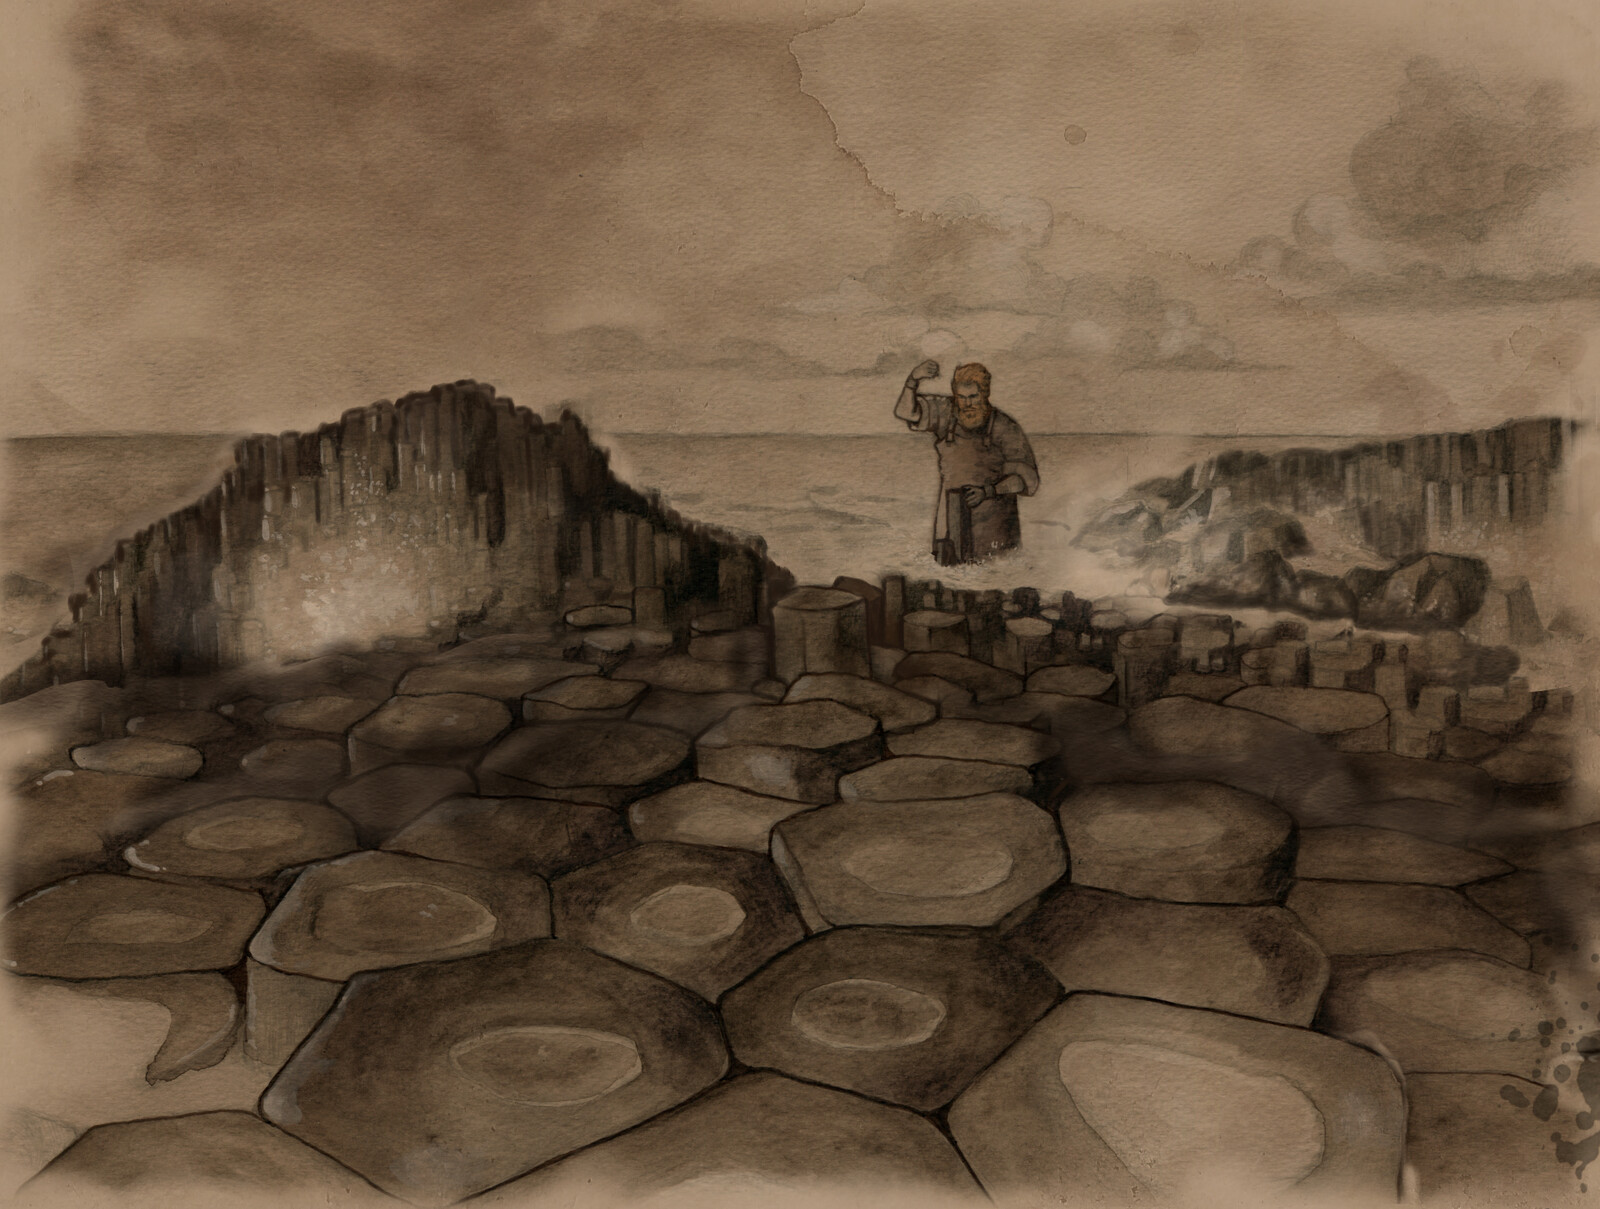 Snippet of the finished scene of Fionn building the causeway